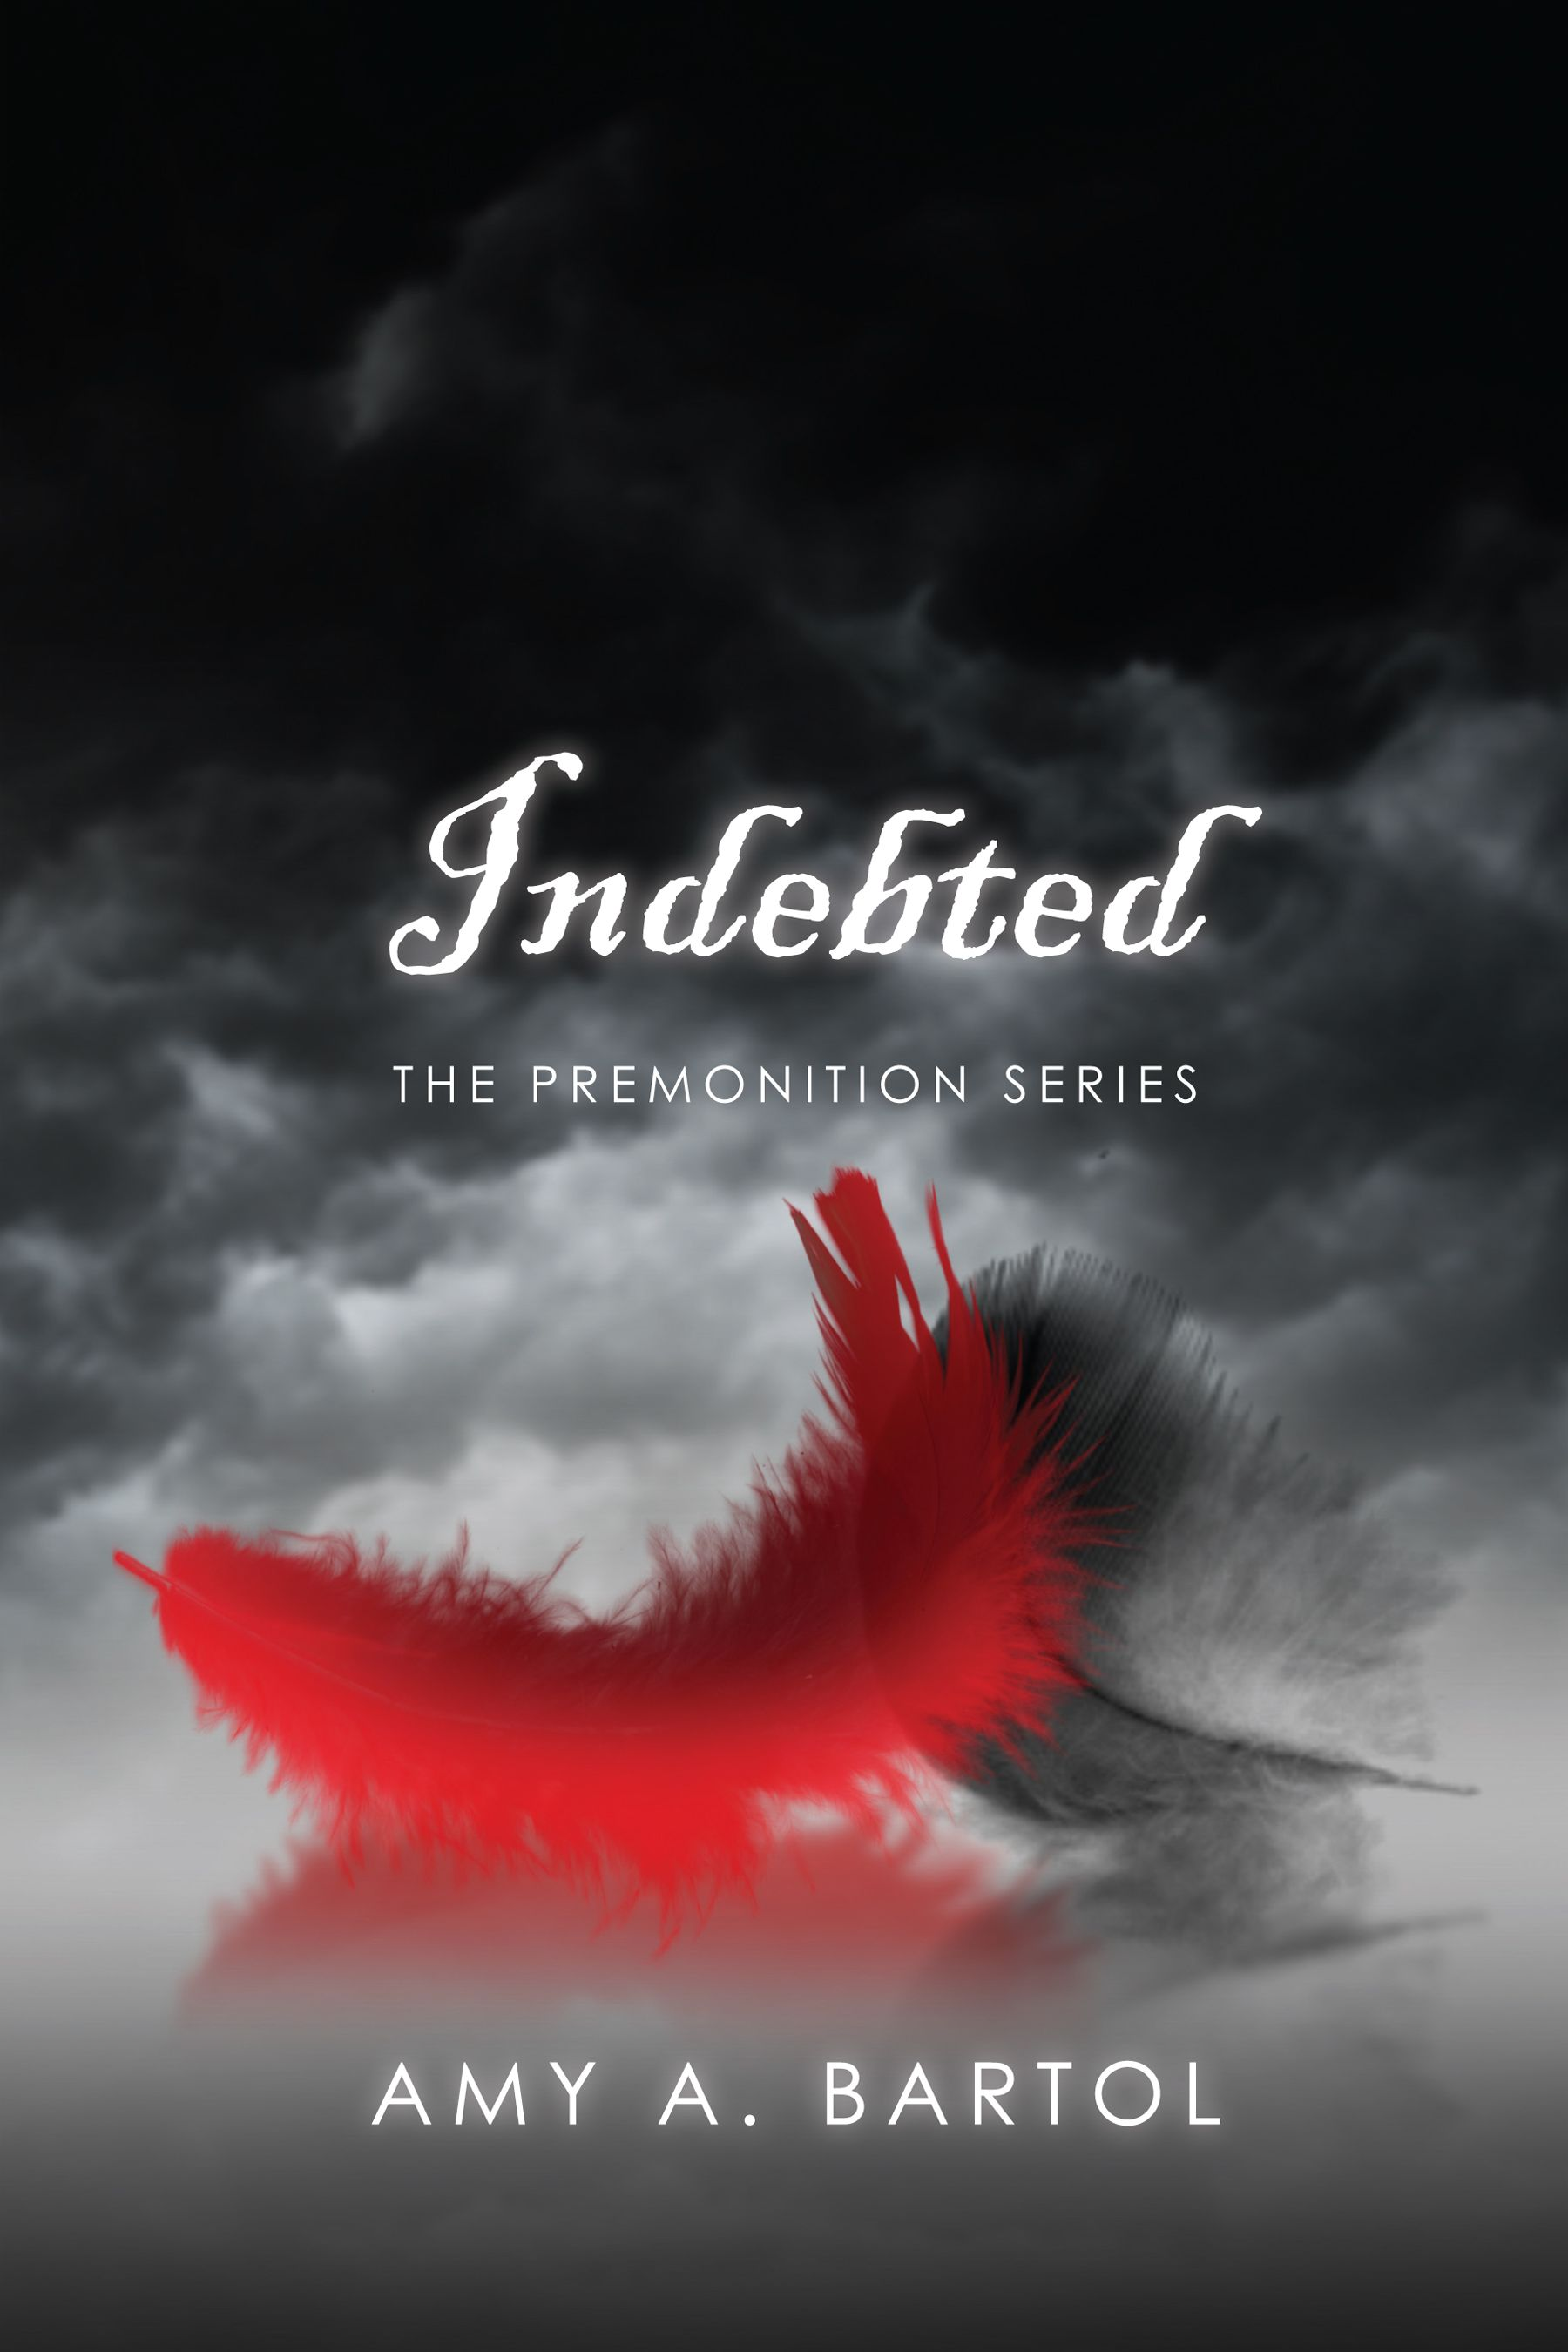 Indebted: The Premonition Series  Volume 3